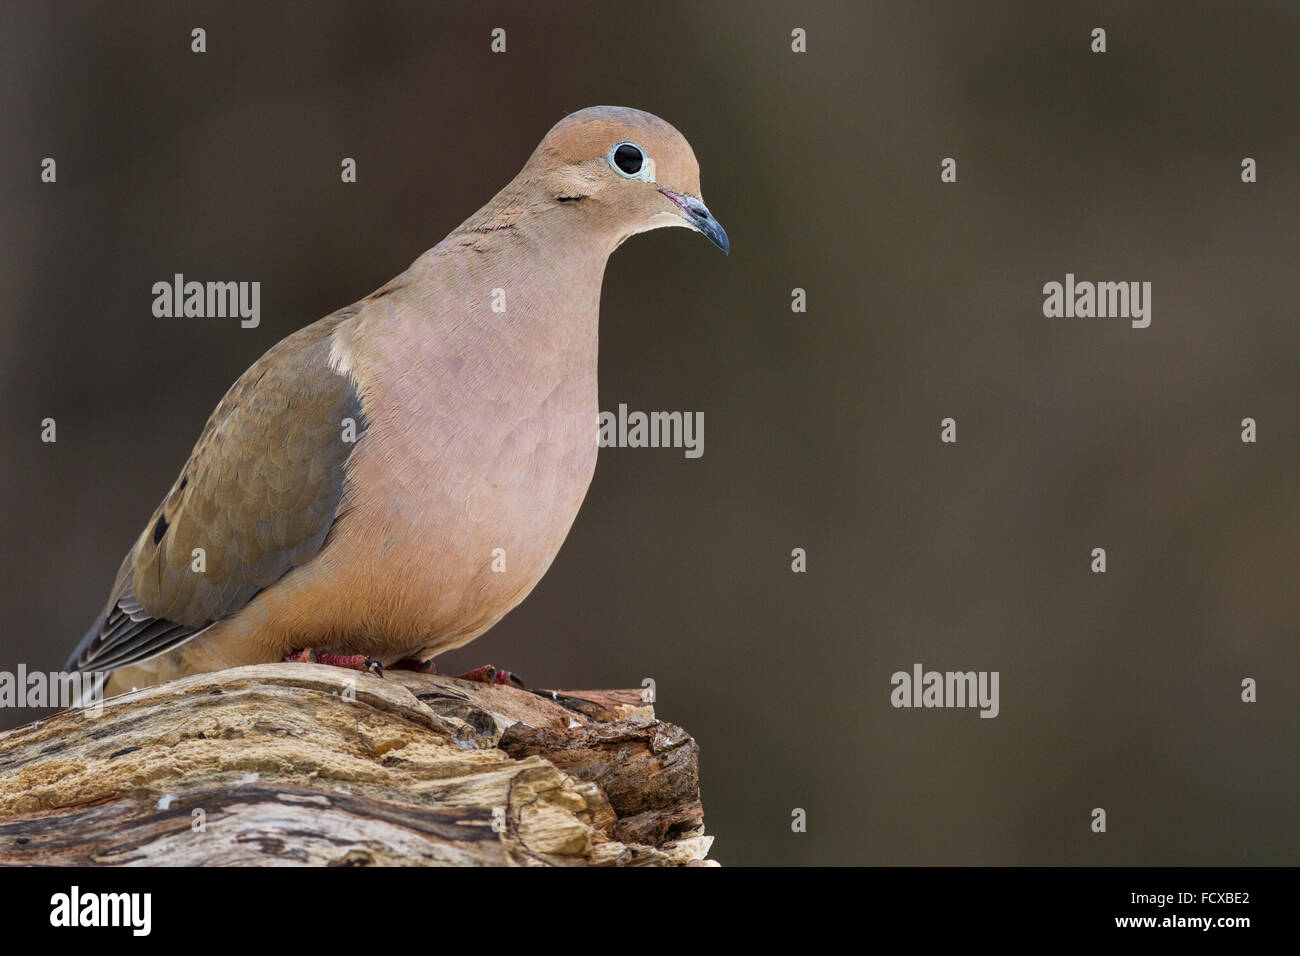 A mourning dove perched on a log. - Stock Image